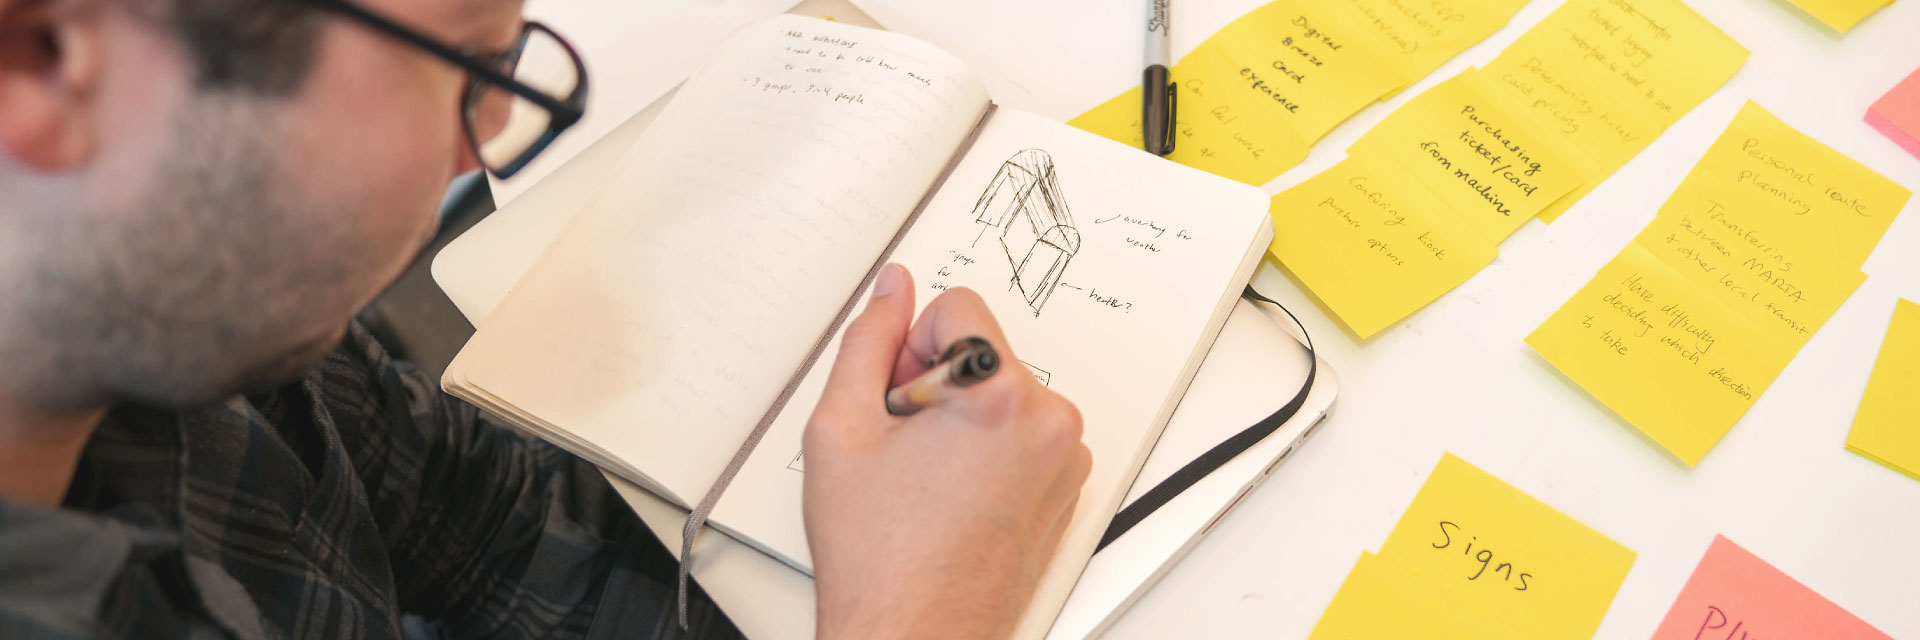 A student sketches while looking at several sticky notes on a desk.